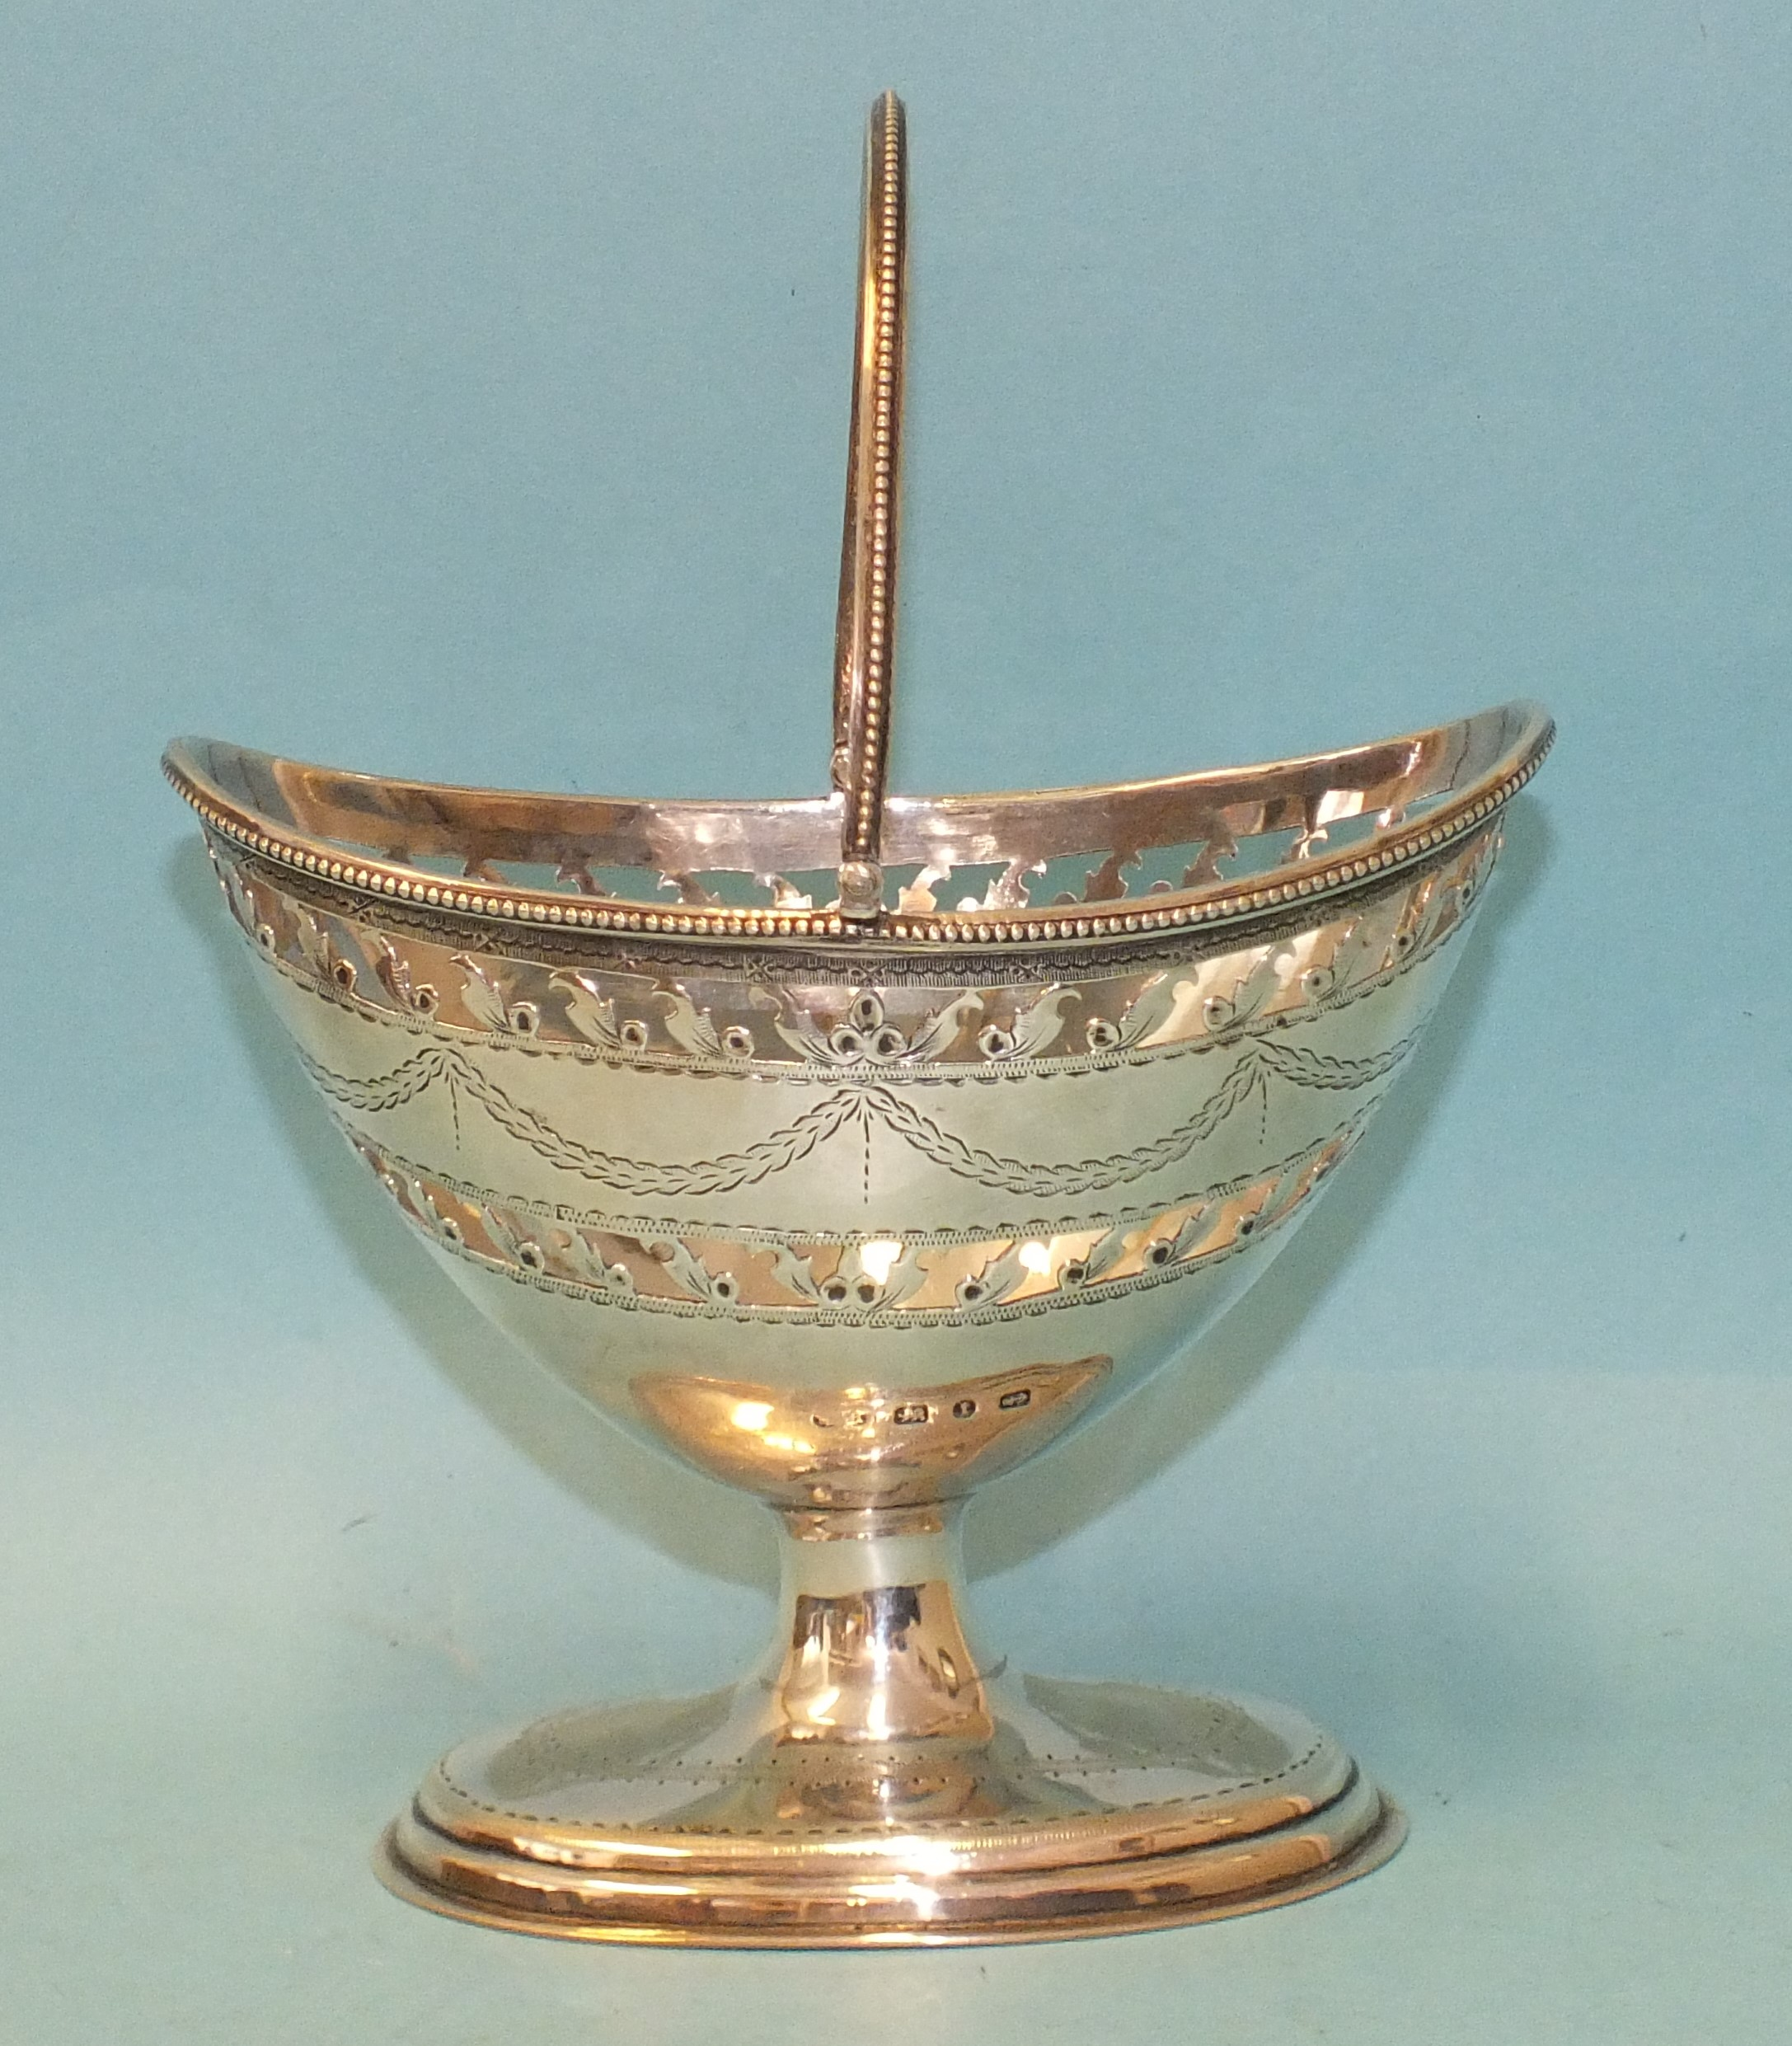 A Victorian silver helmet-shaped swing handle sugar basket with beaded border, engraved decoration